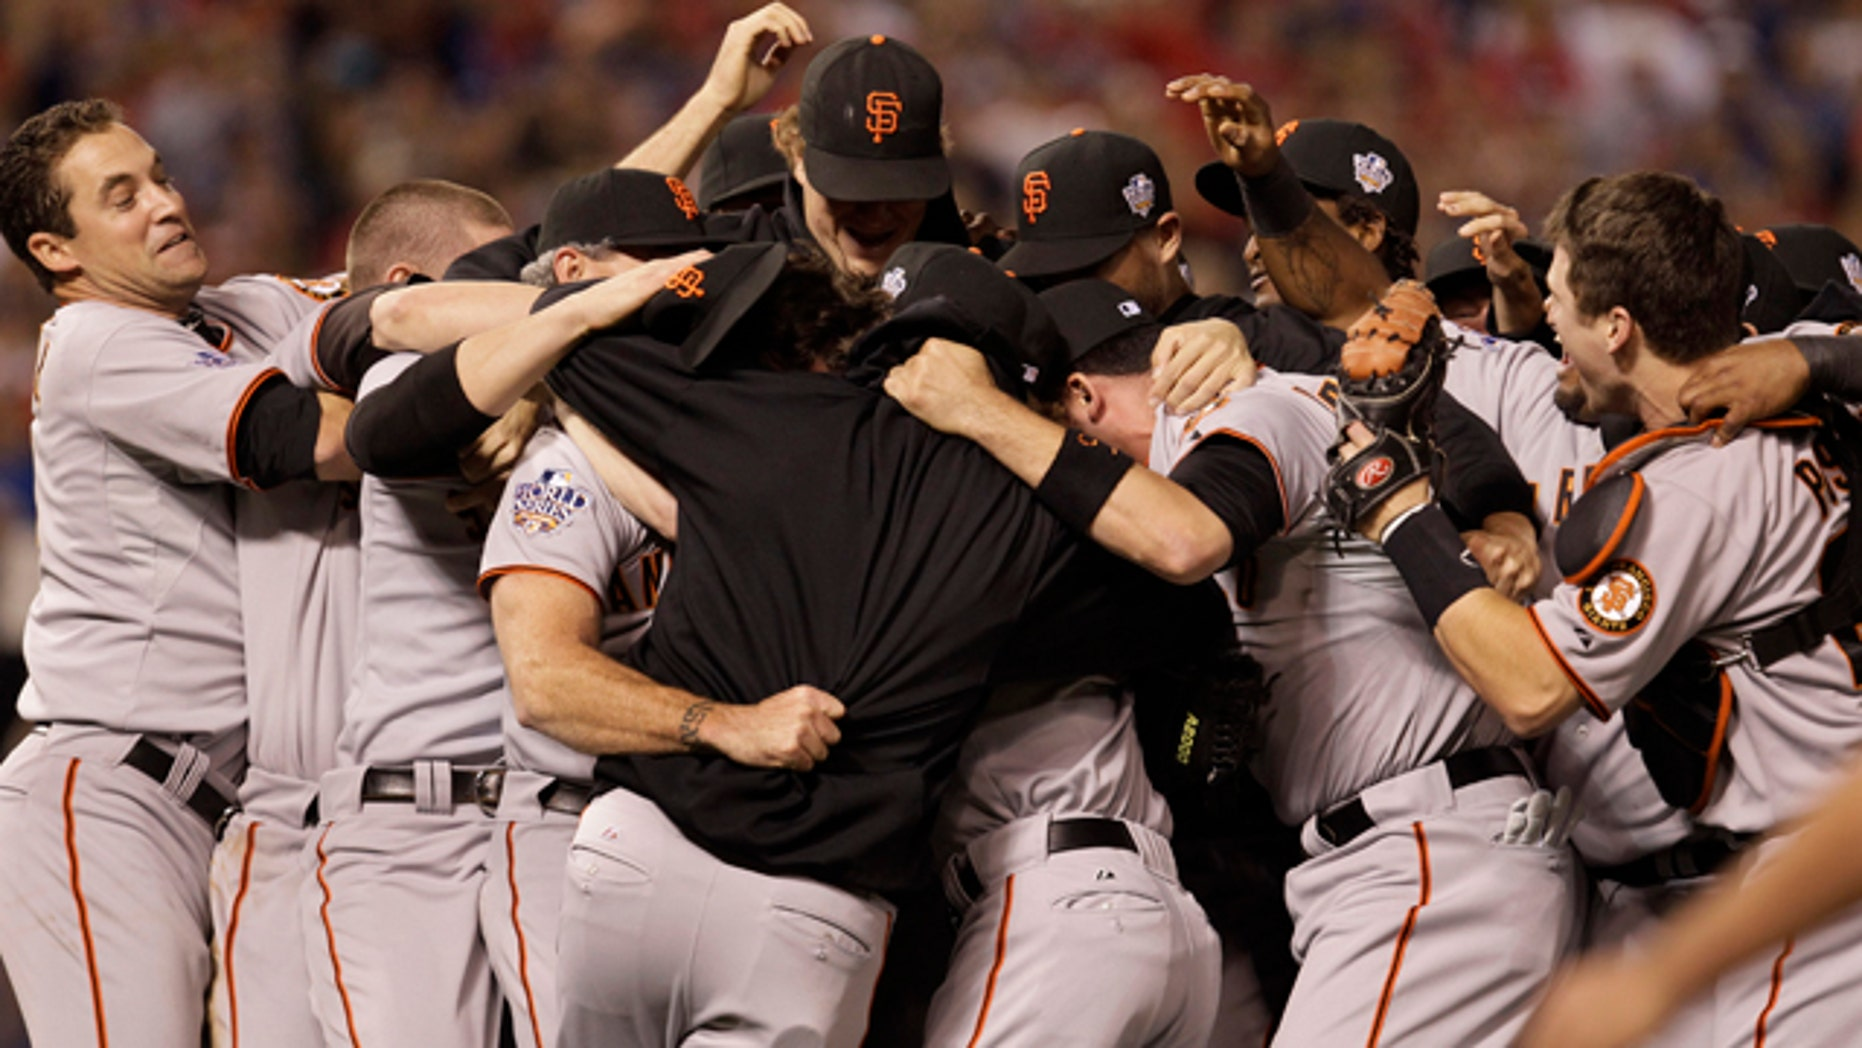 Nov. 1: San Francisco Giants celebrate after winning the World Series in Game 5 of baseball's World Series against the Texas Rangers in Arlington, Texas.